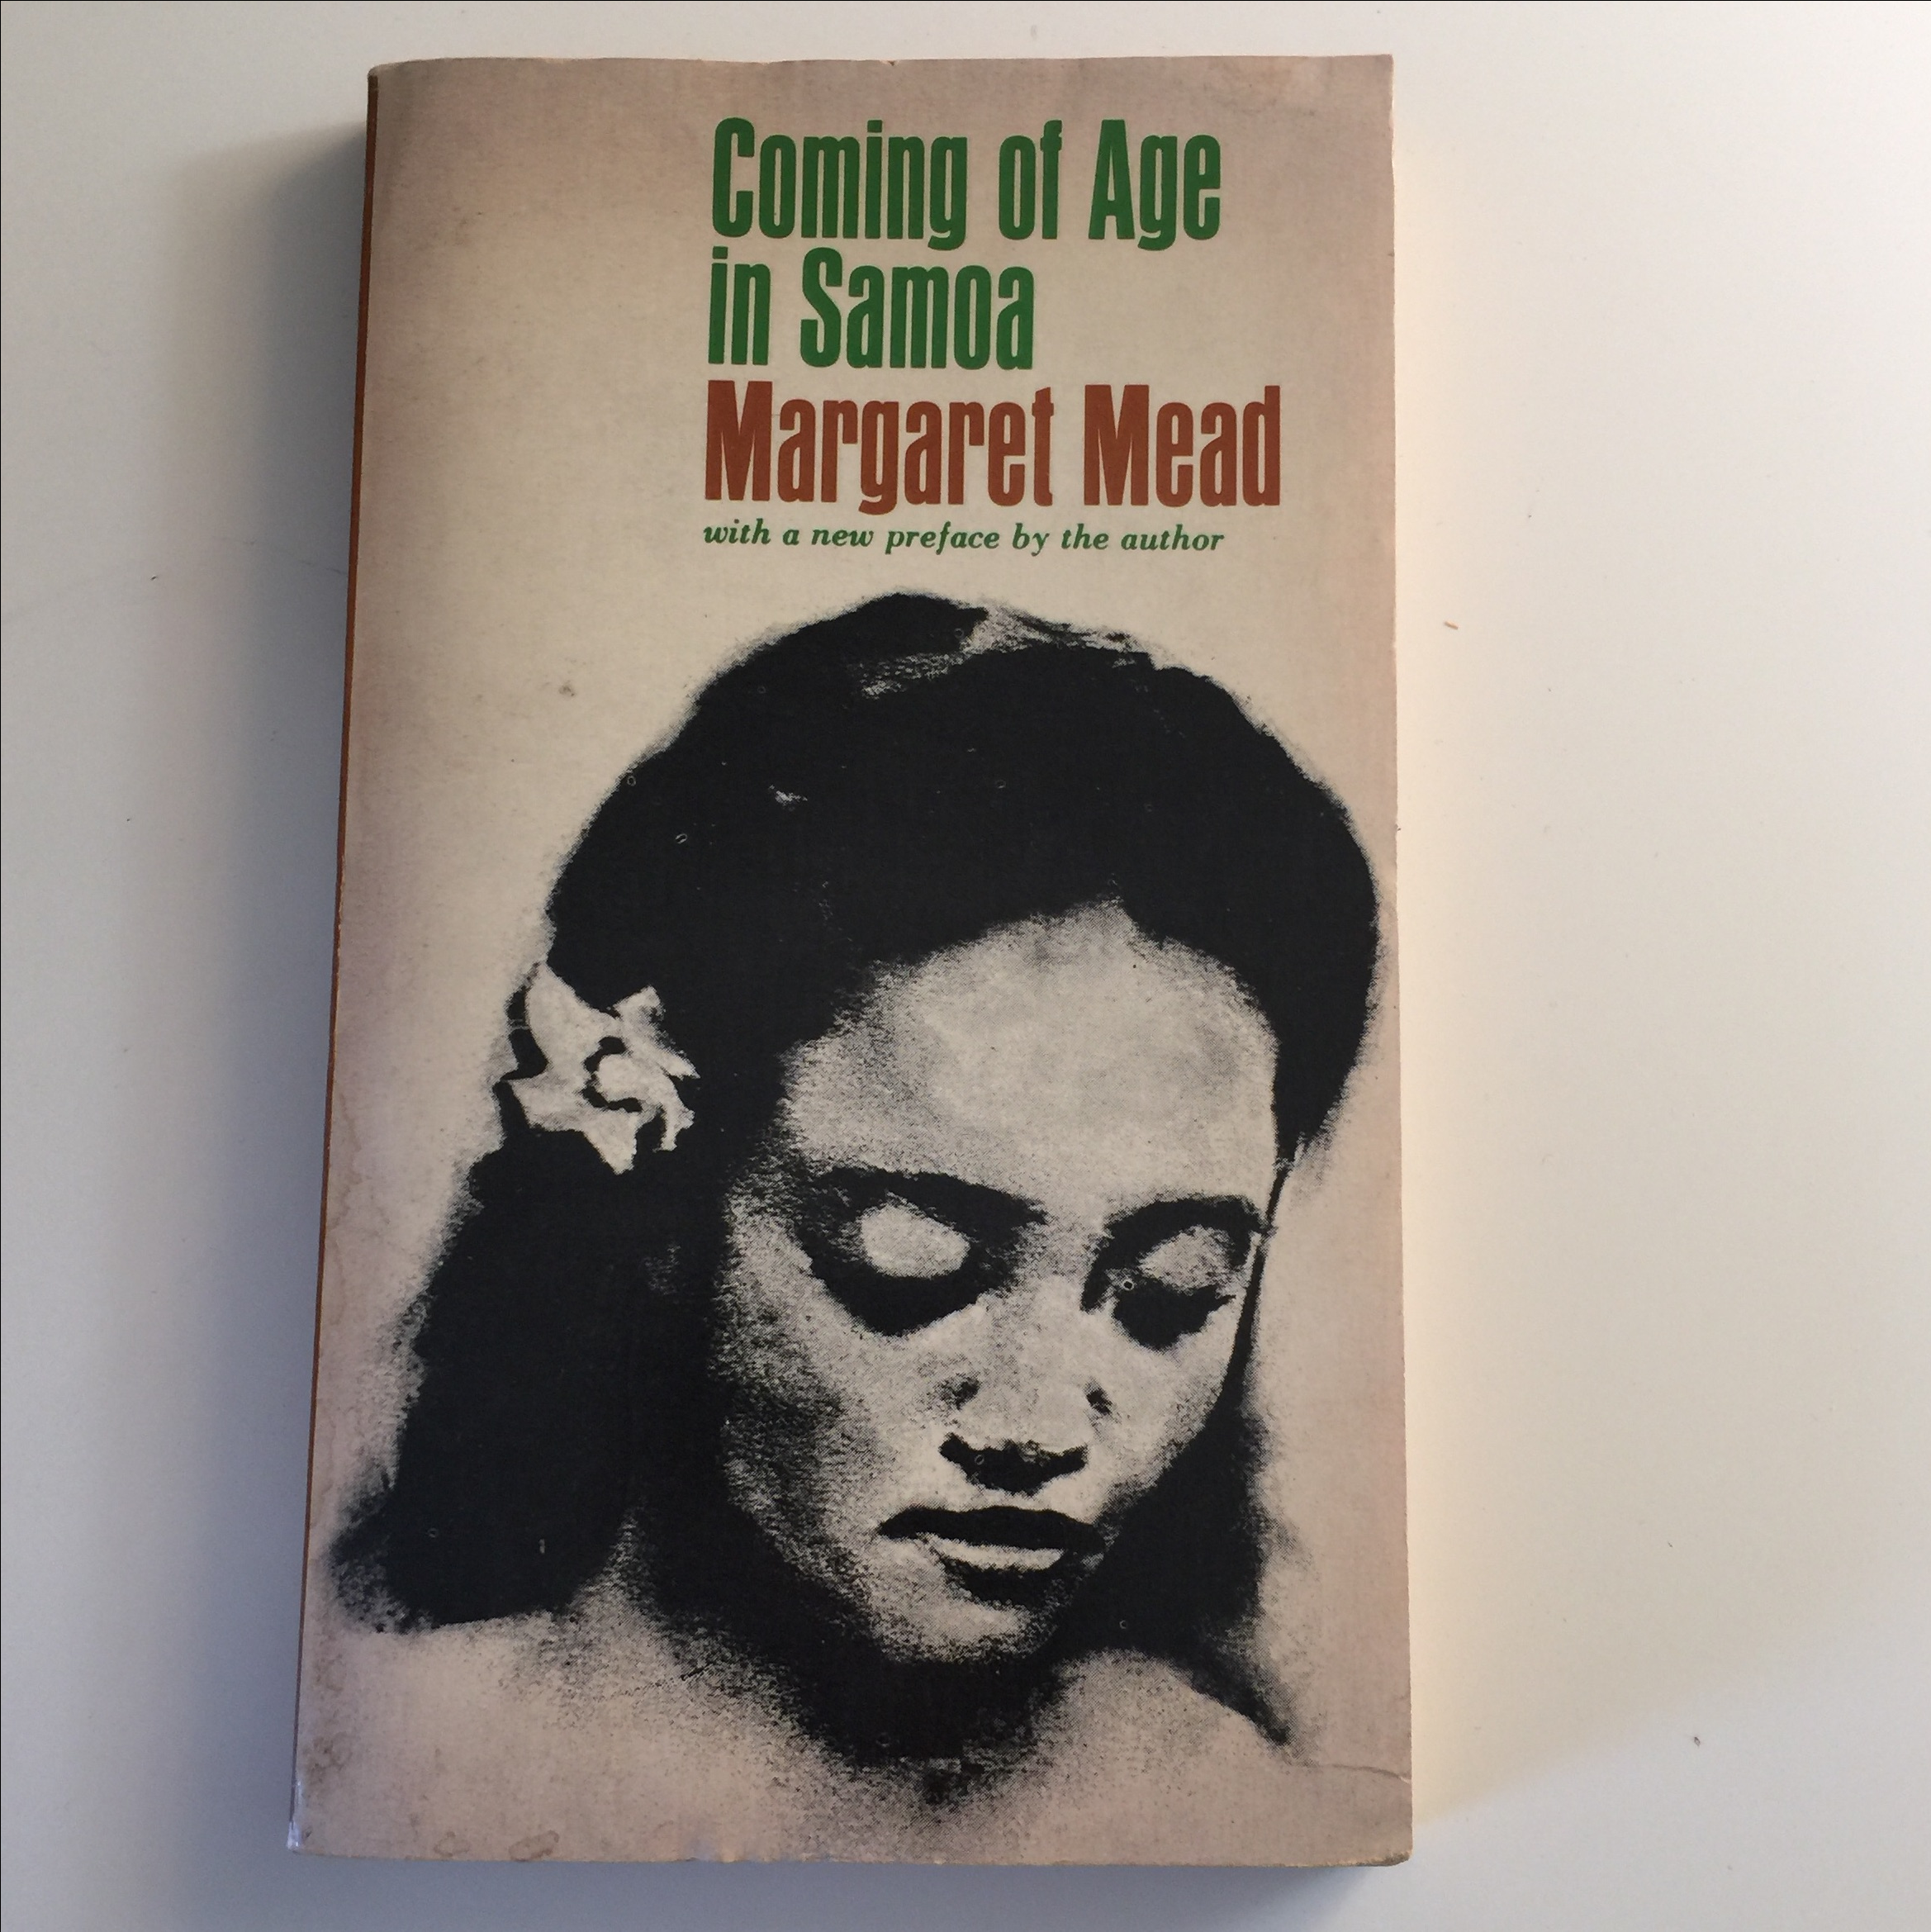 a review of margaret meads coming of age in samoa An analysis of margaret mead's the coming of age in samoa pages 3 words 1,316 view full essay more essays like this: the coming age of samoa, frank boas, father of american.